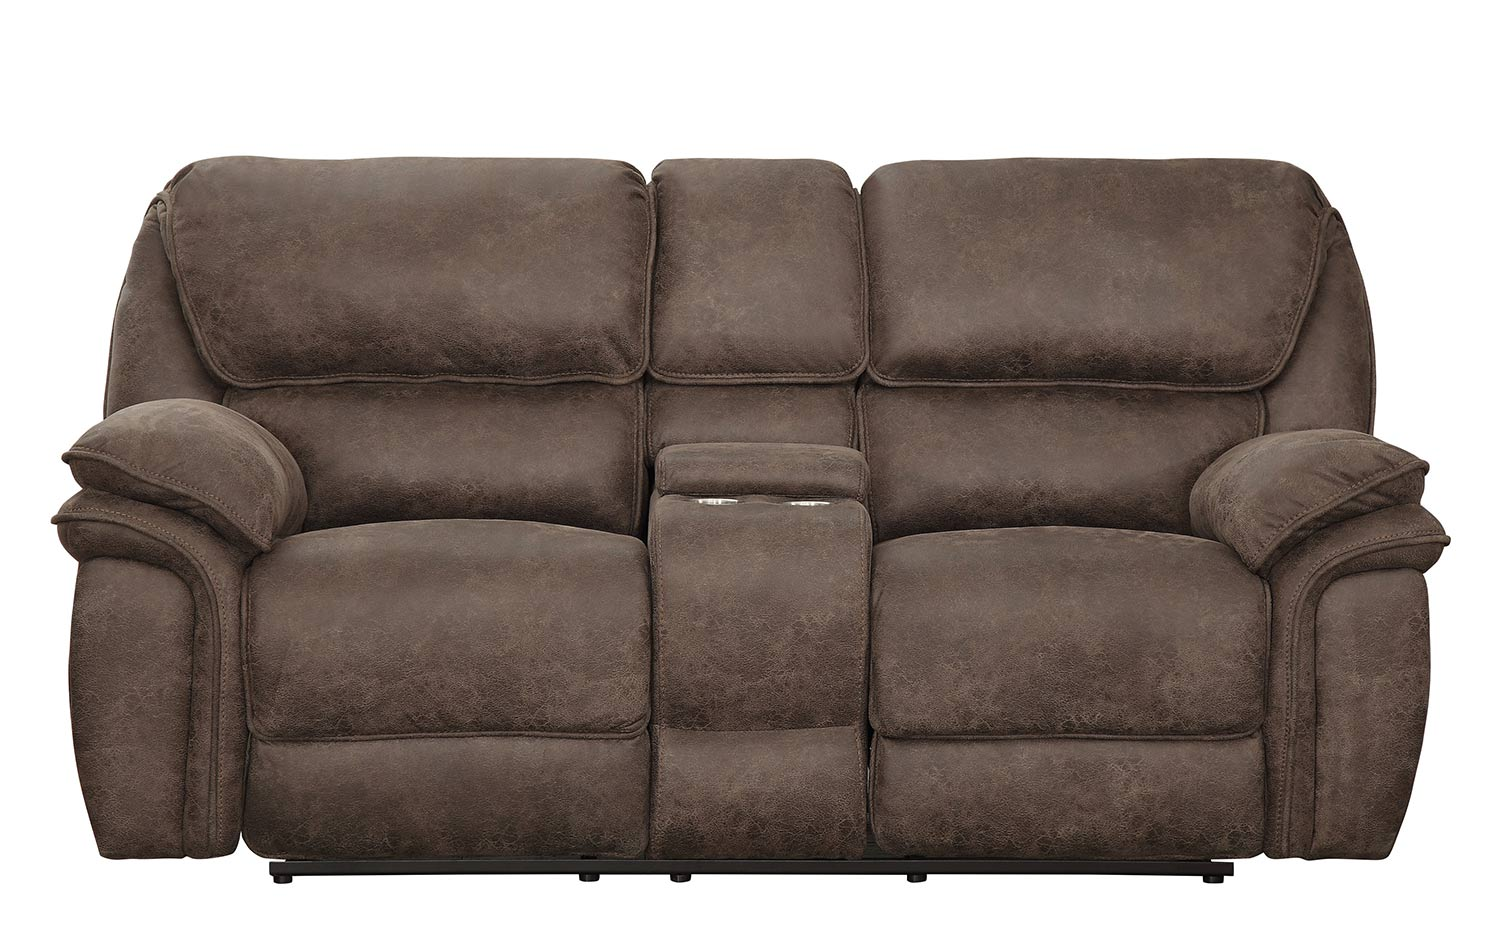 Homelegance Hadden Power Double Reclining Love Seat With Center Console - Dark Brown